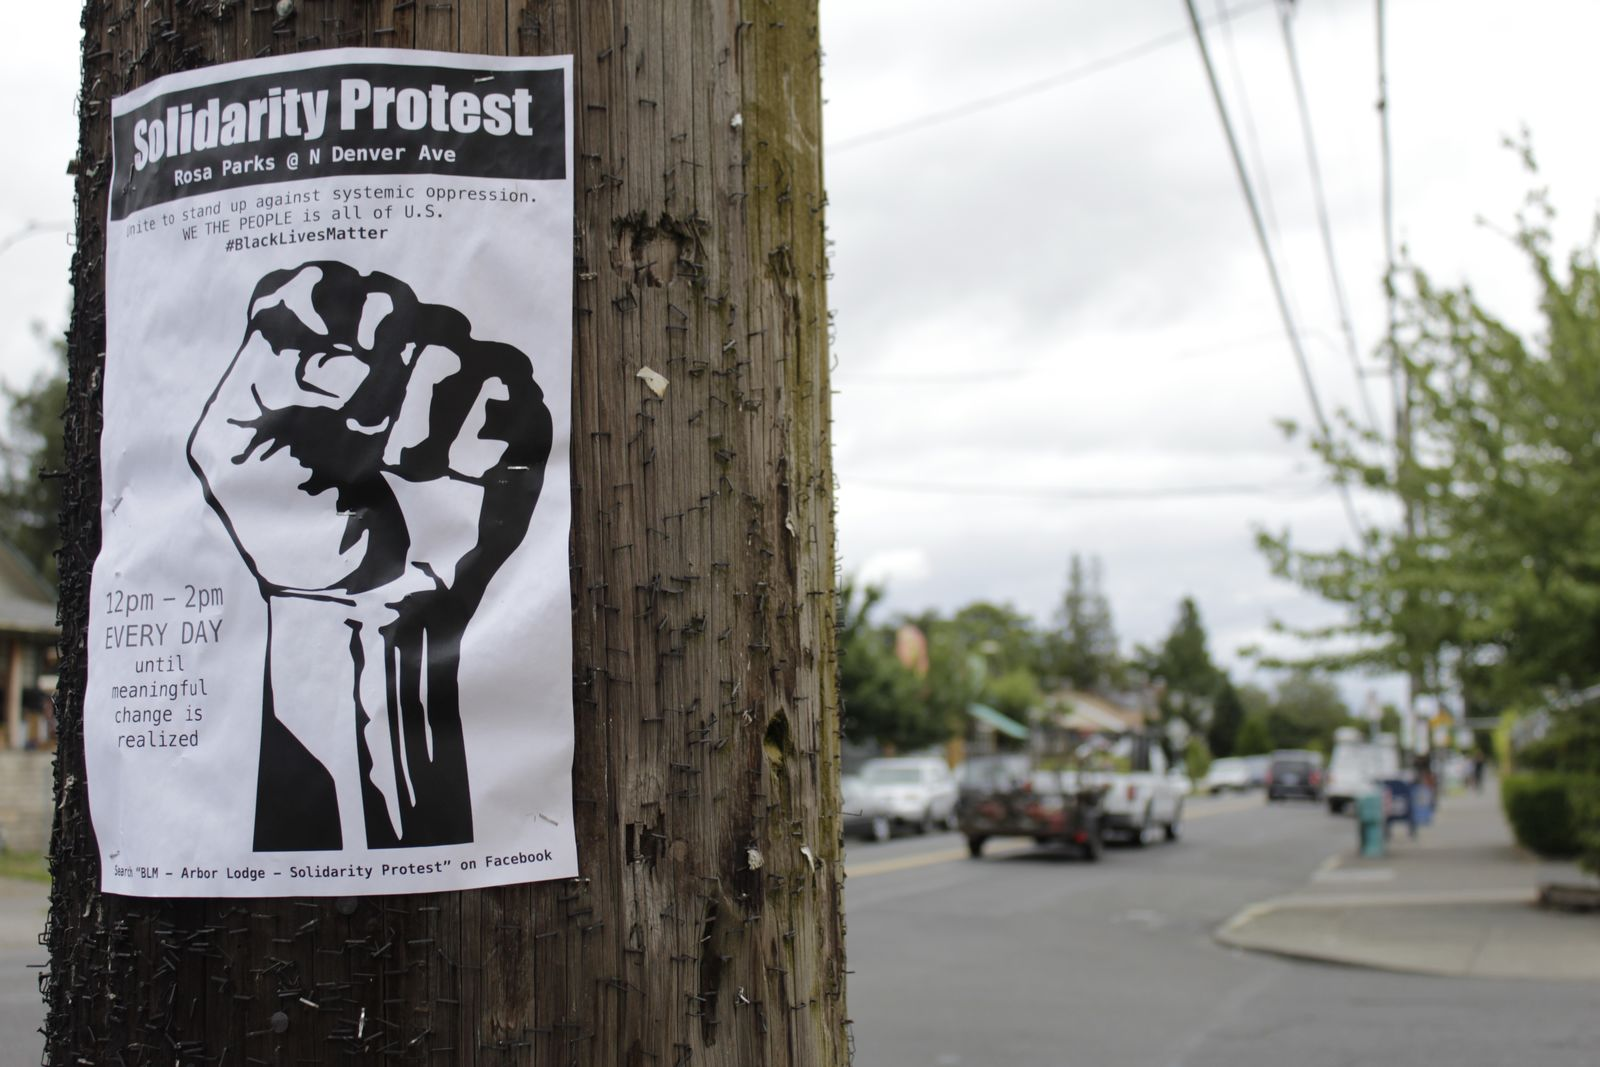 A sign advertising a daily protest in solidarity with Black Lives Matter is affixed to a telephone pole in a historically Black neighborhood in Portland, Ore., on Wednesday, July 1 2020. (AP Photo/Gillian Flaccus)